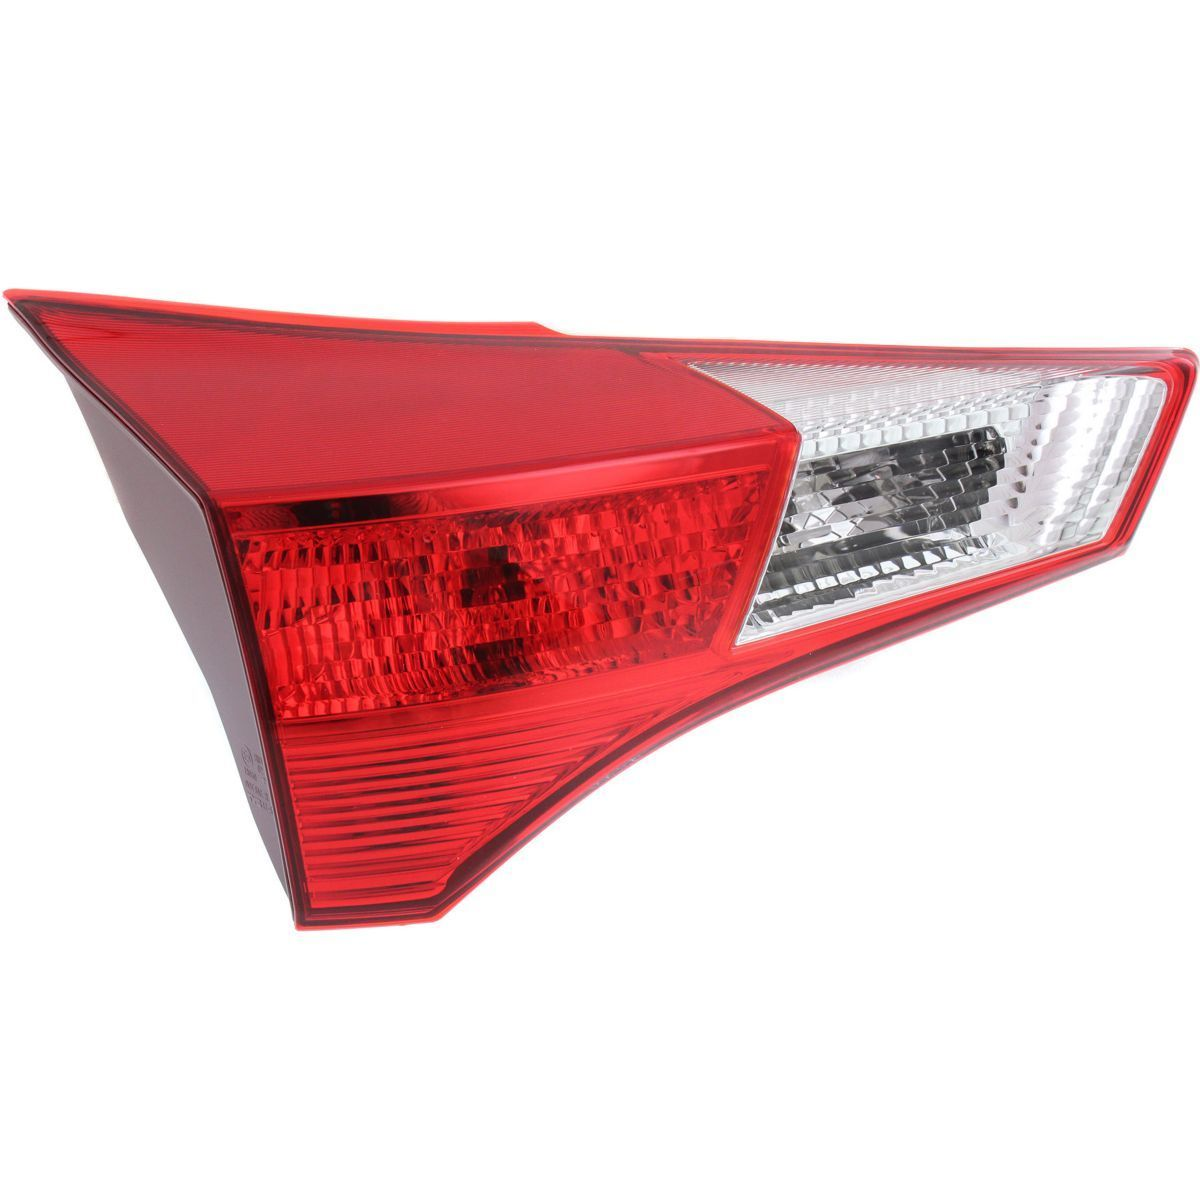 Toyota RAV4 2013 2014 2015 tail light inner left driver